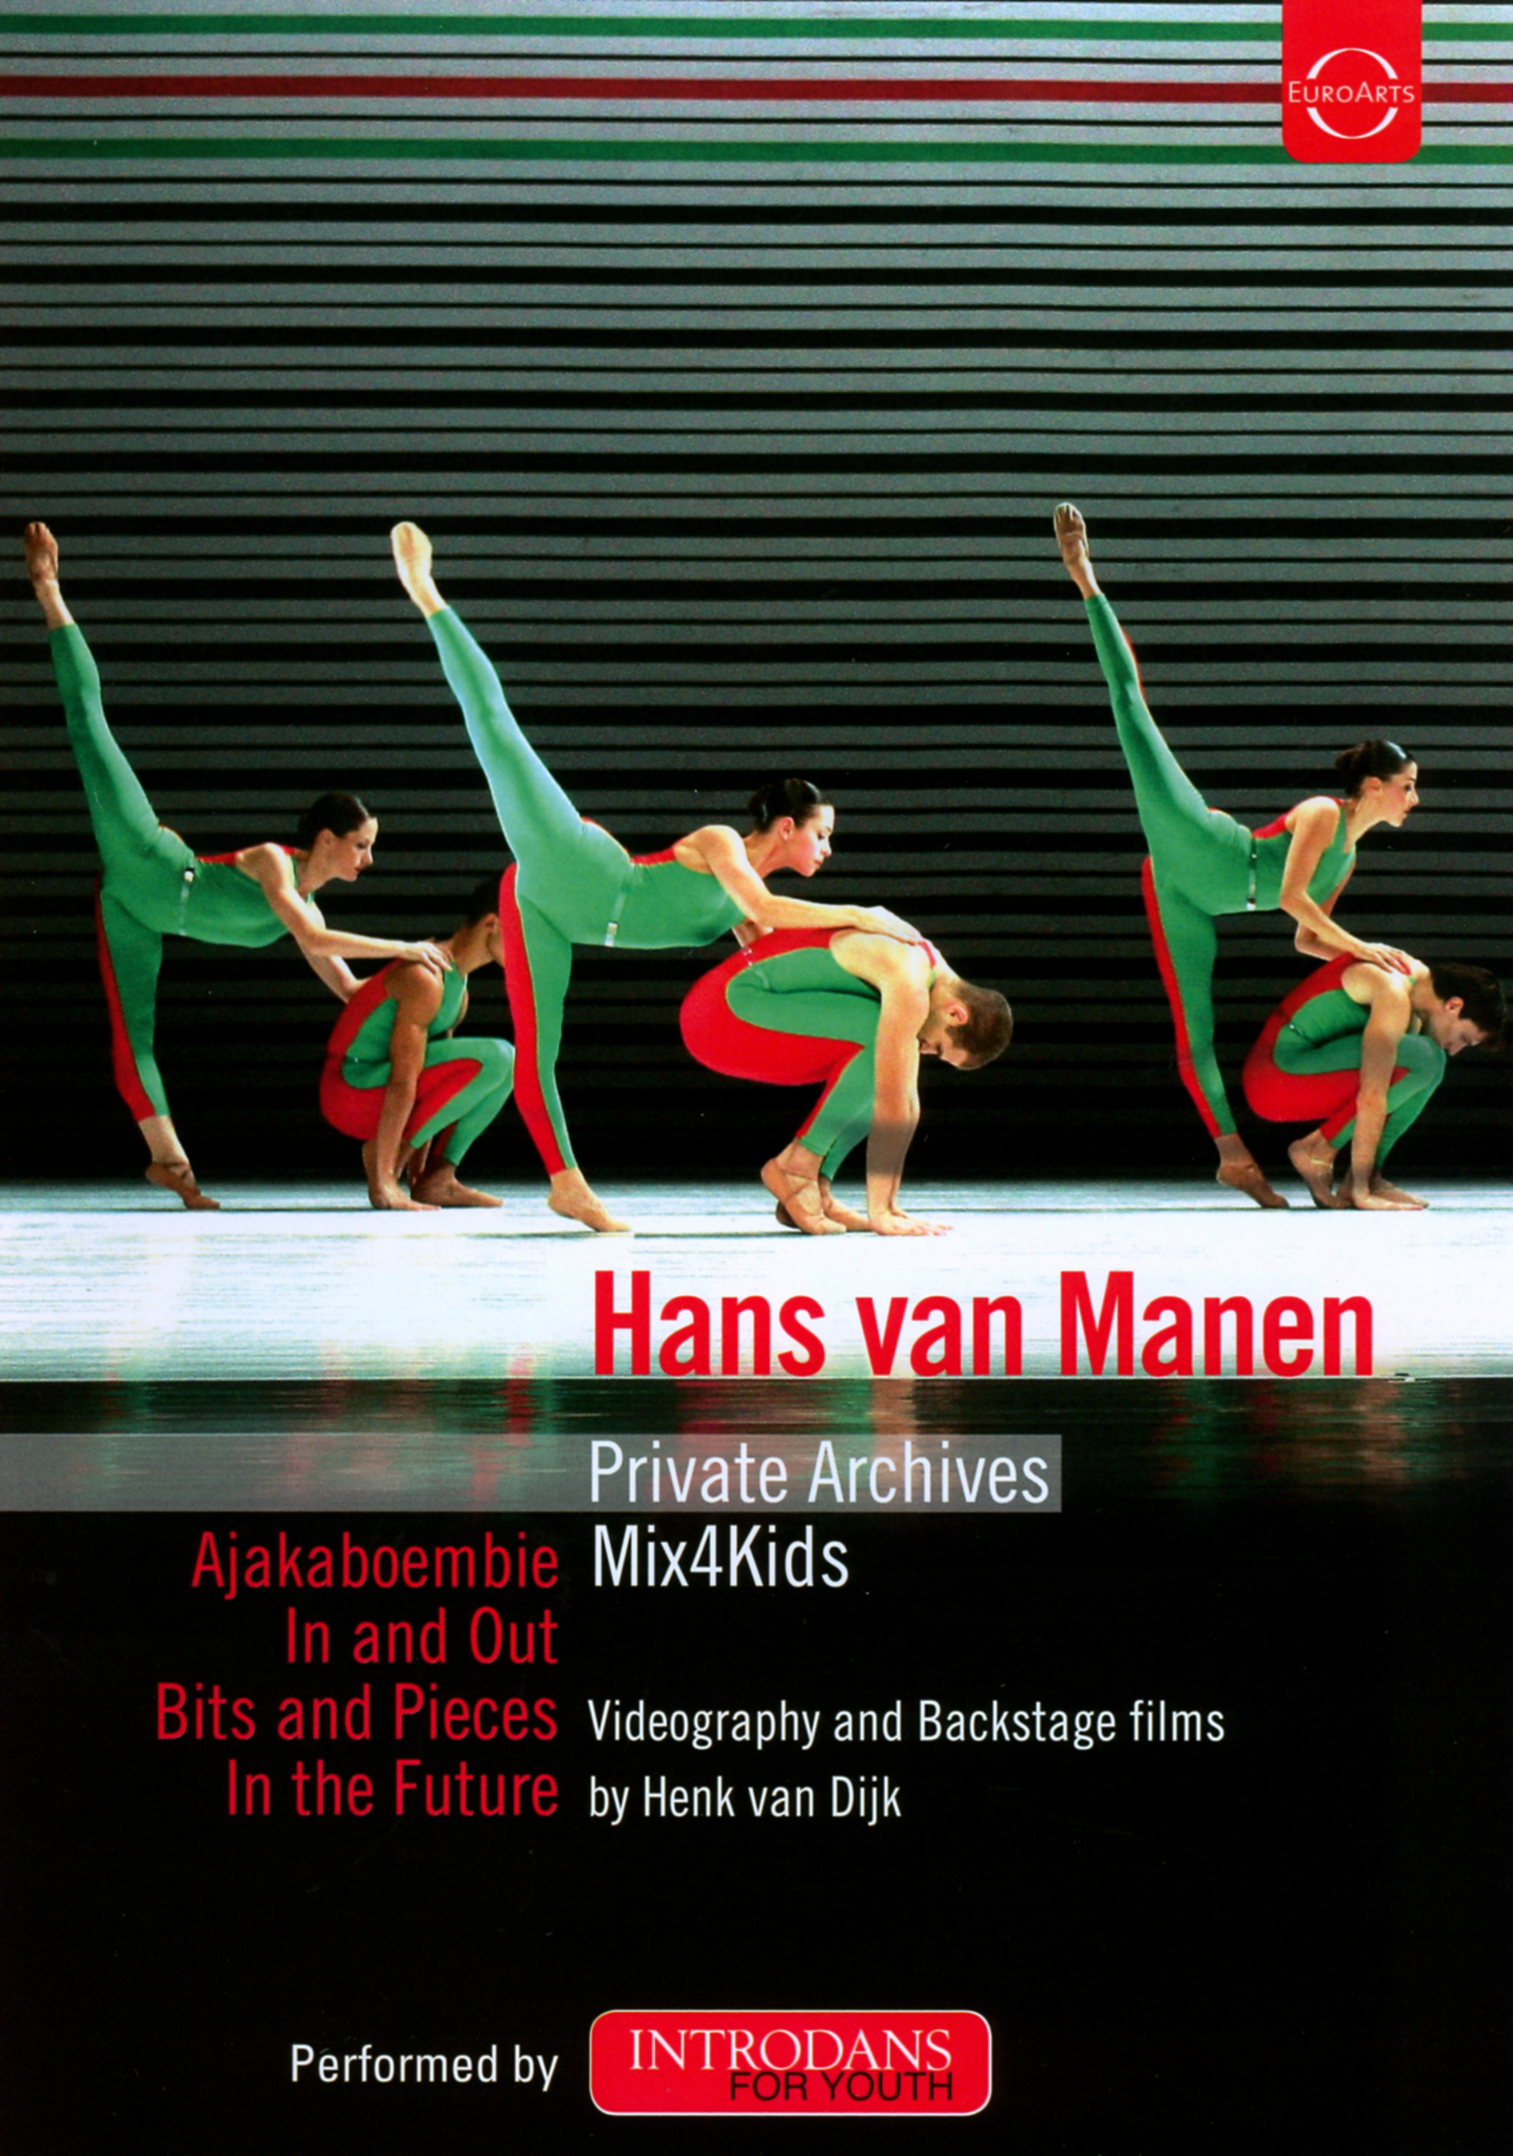 Introdans Ensemble for Youth: Hans van Manen - Private Archives/Mix4Kids